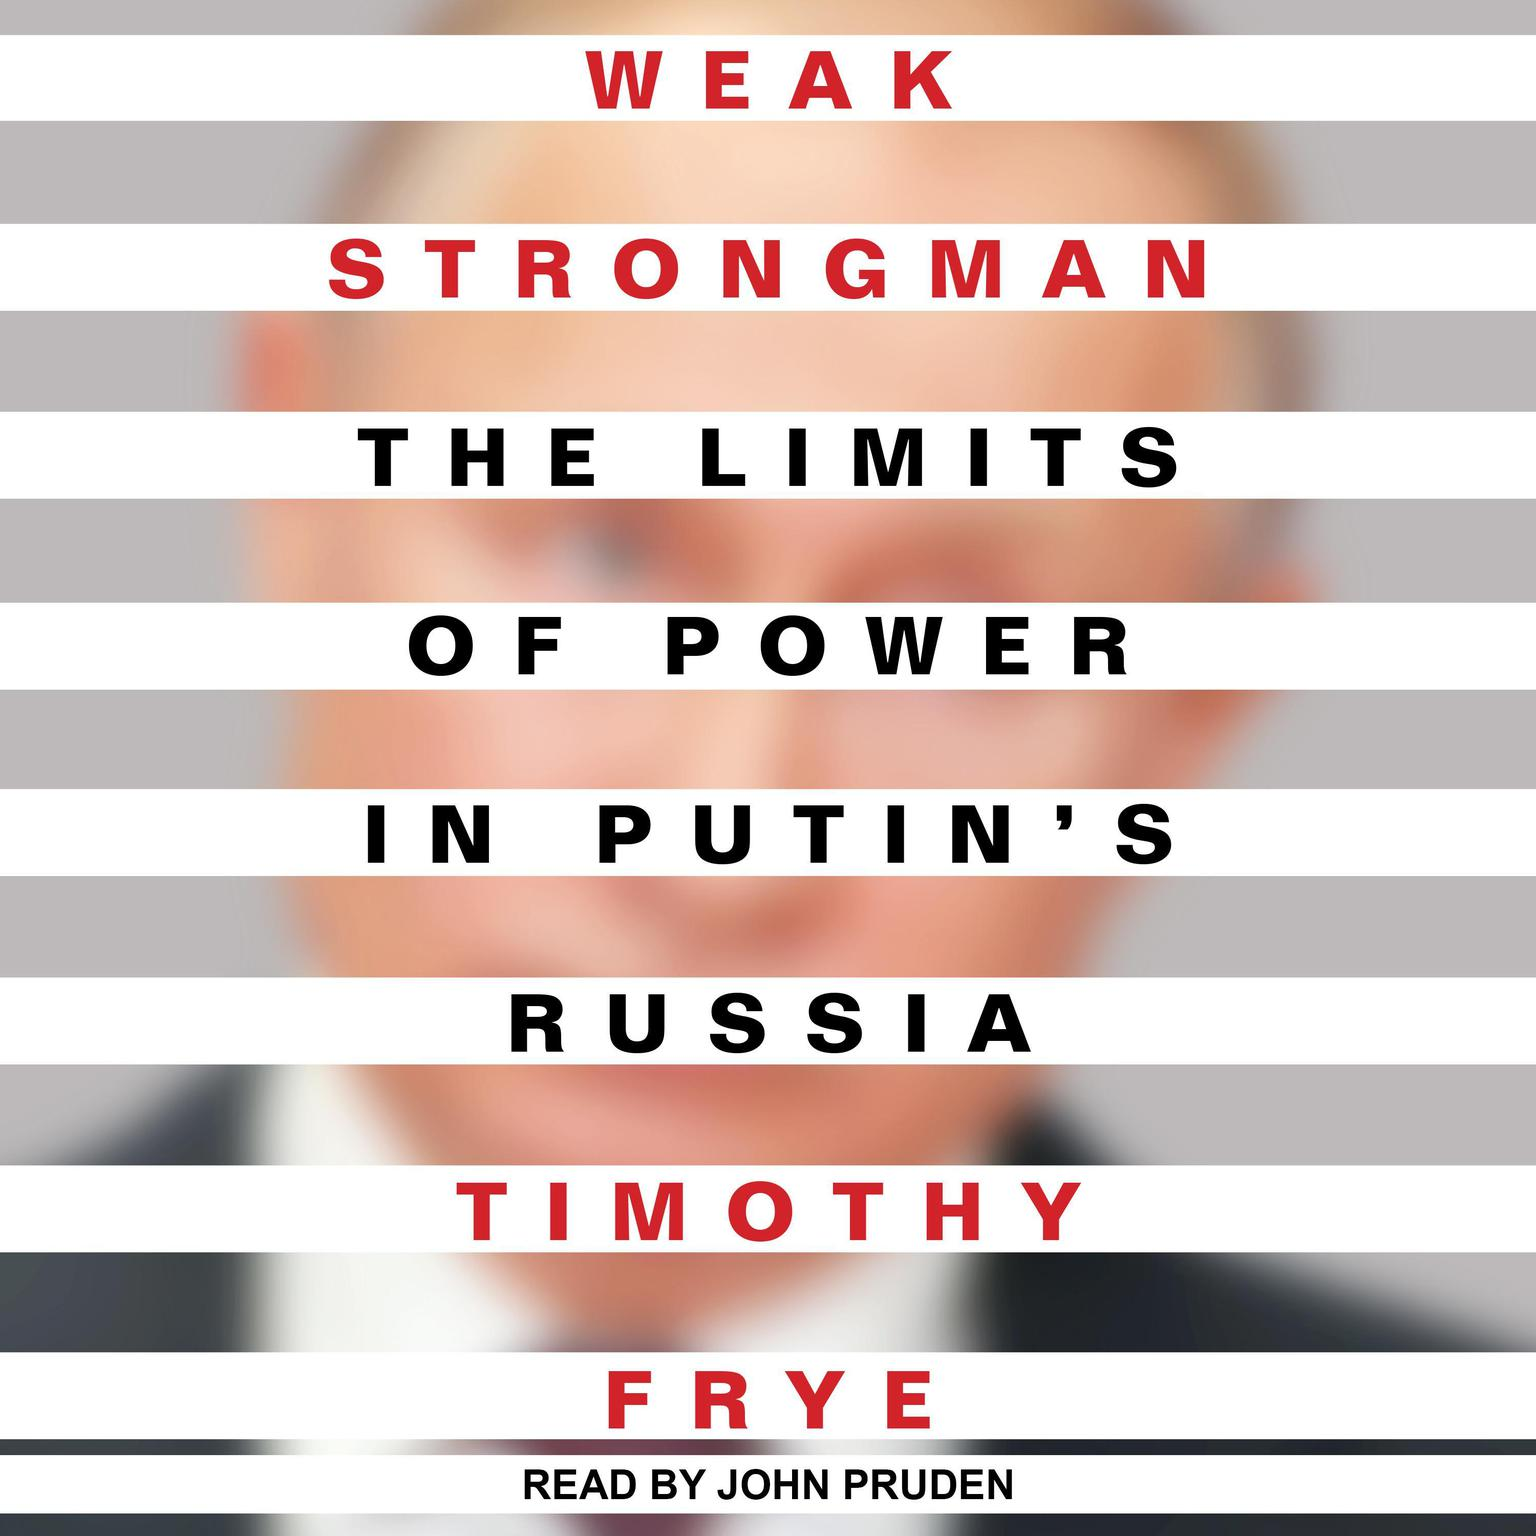 Weak Strongman: The Limits of Power in Putins Russia Audiobook, by Timothy Frye